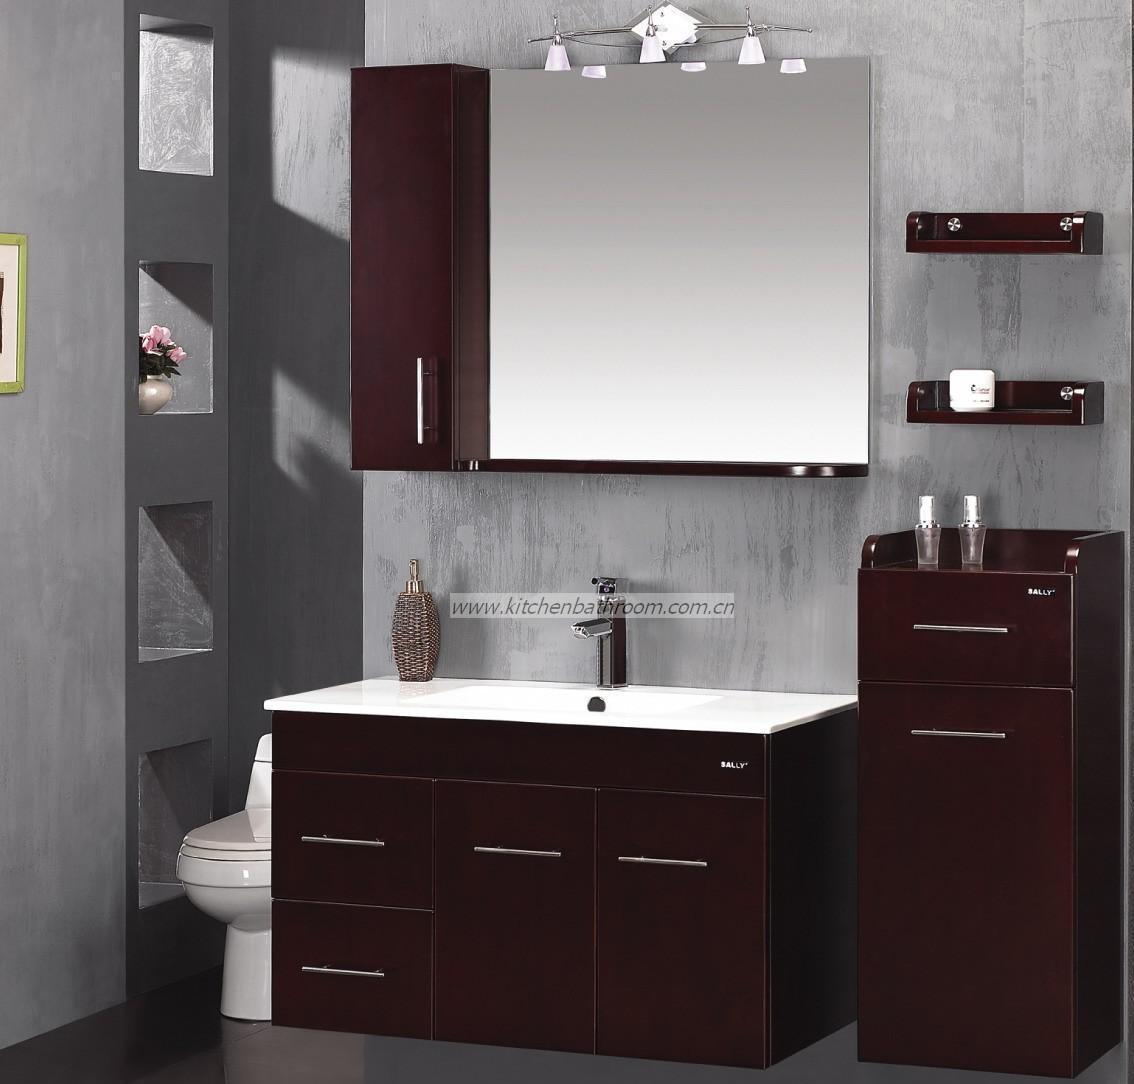 China bathroom cabinets yxbc 2022 china bathroom for Bathroom furniture